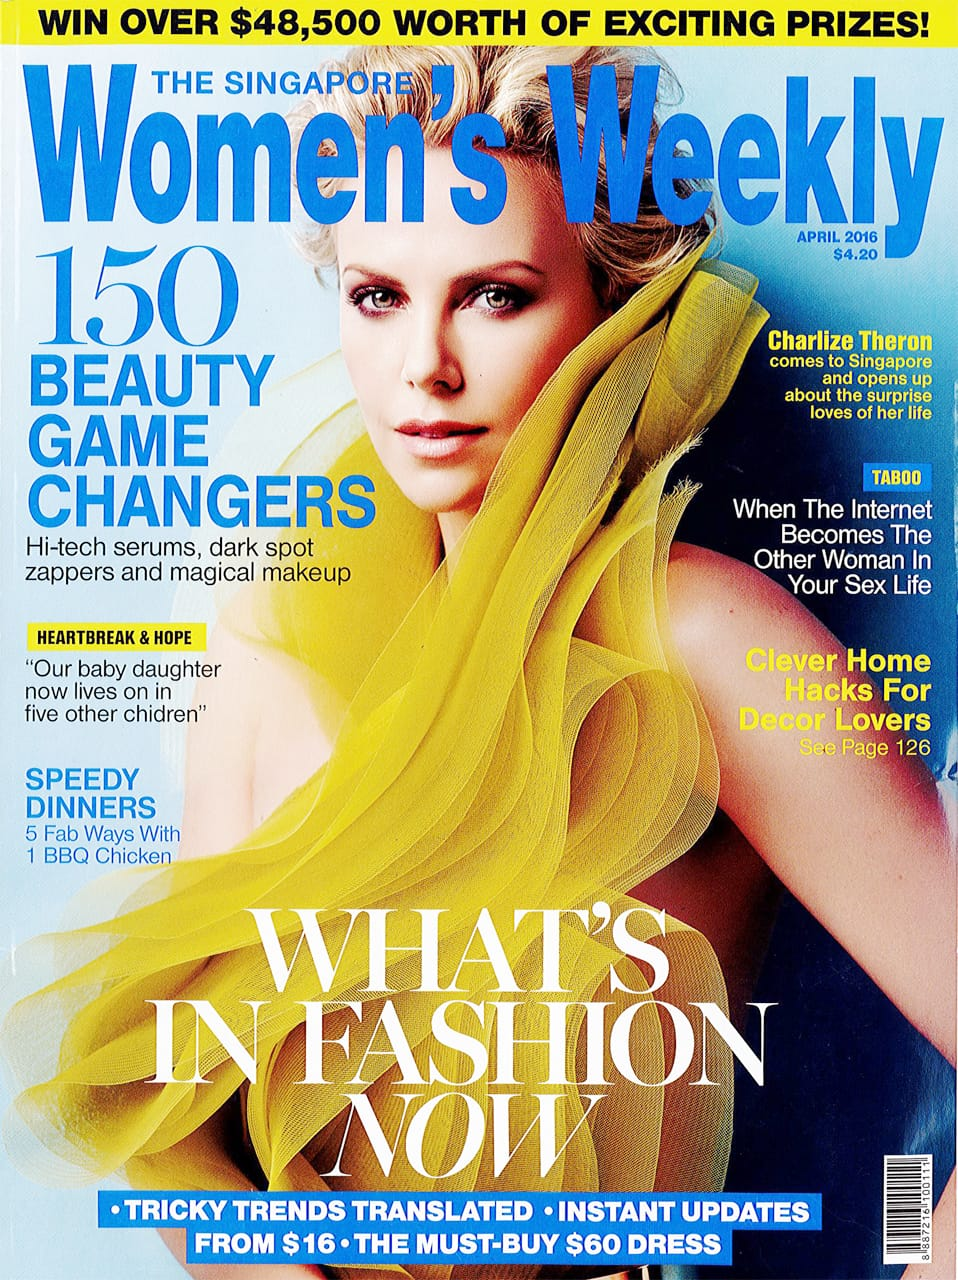 Women's Weekly - May 2016 Issue